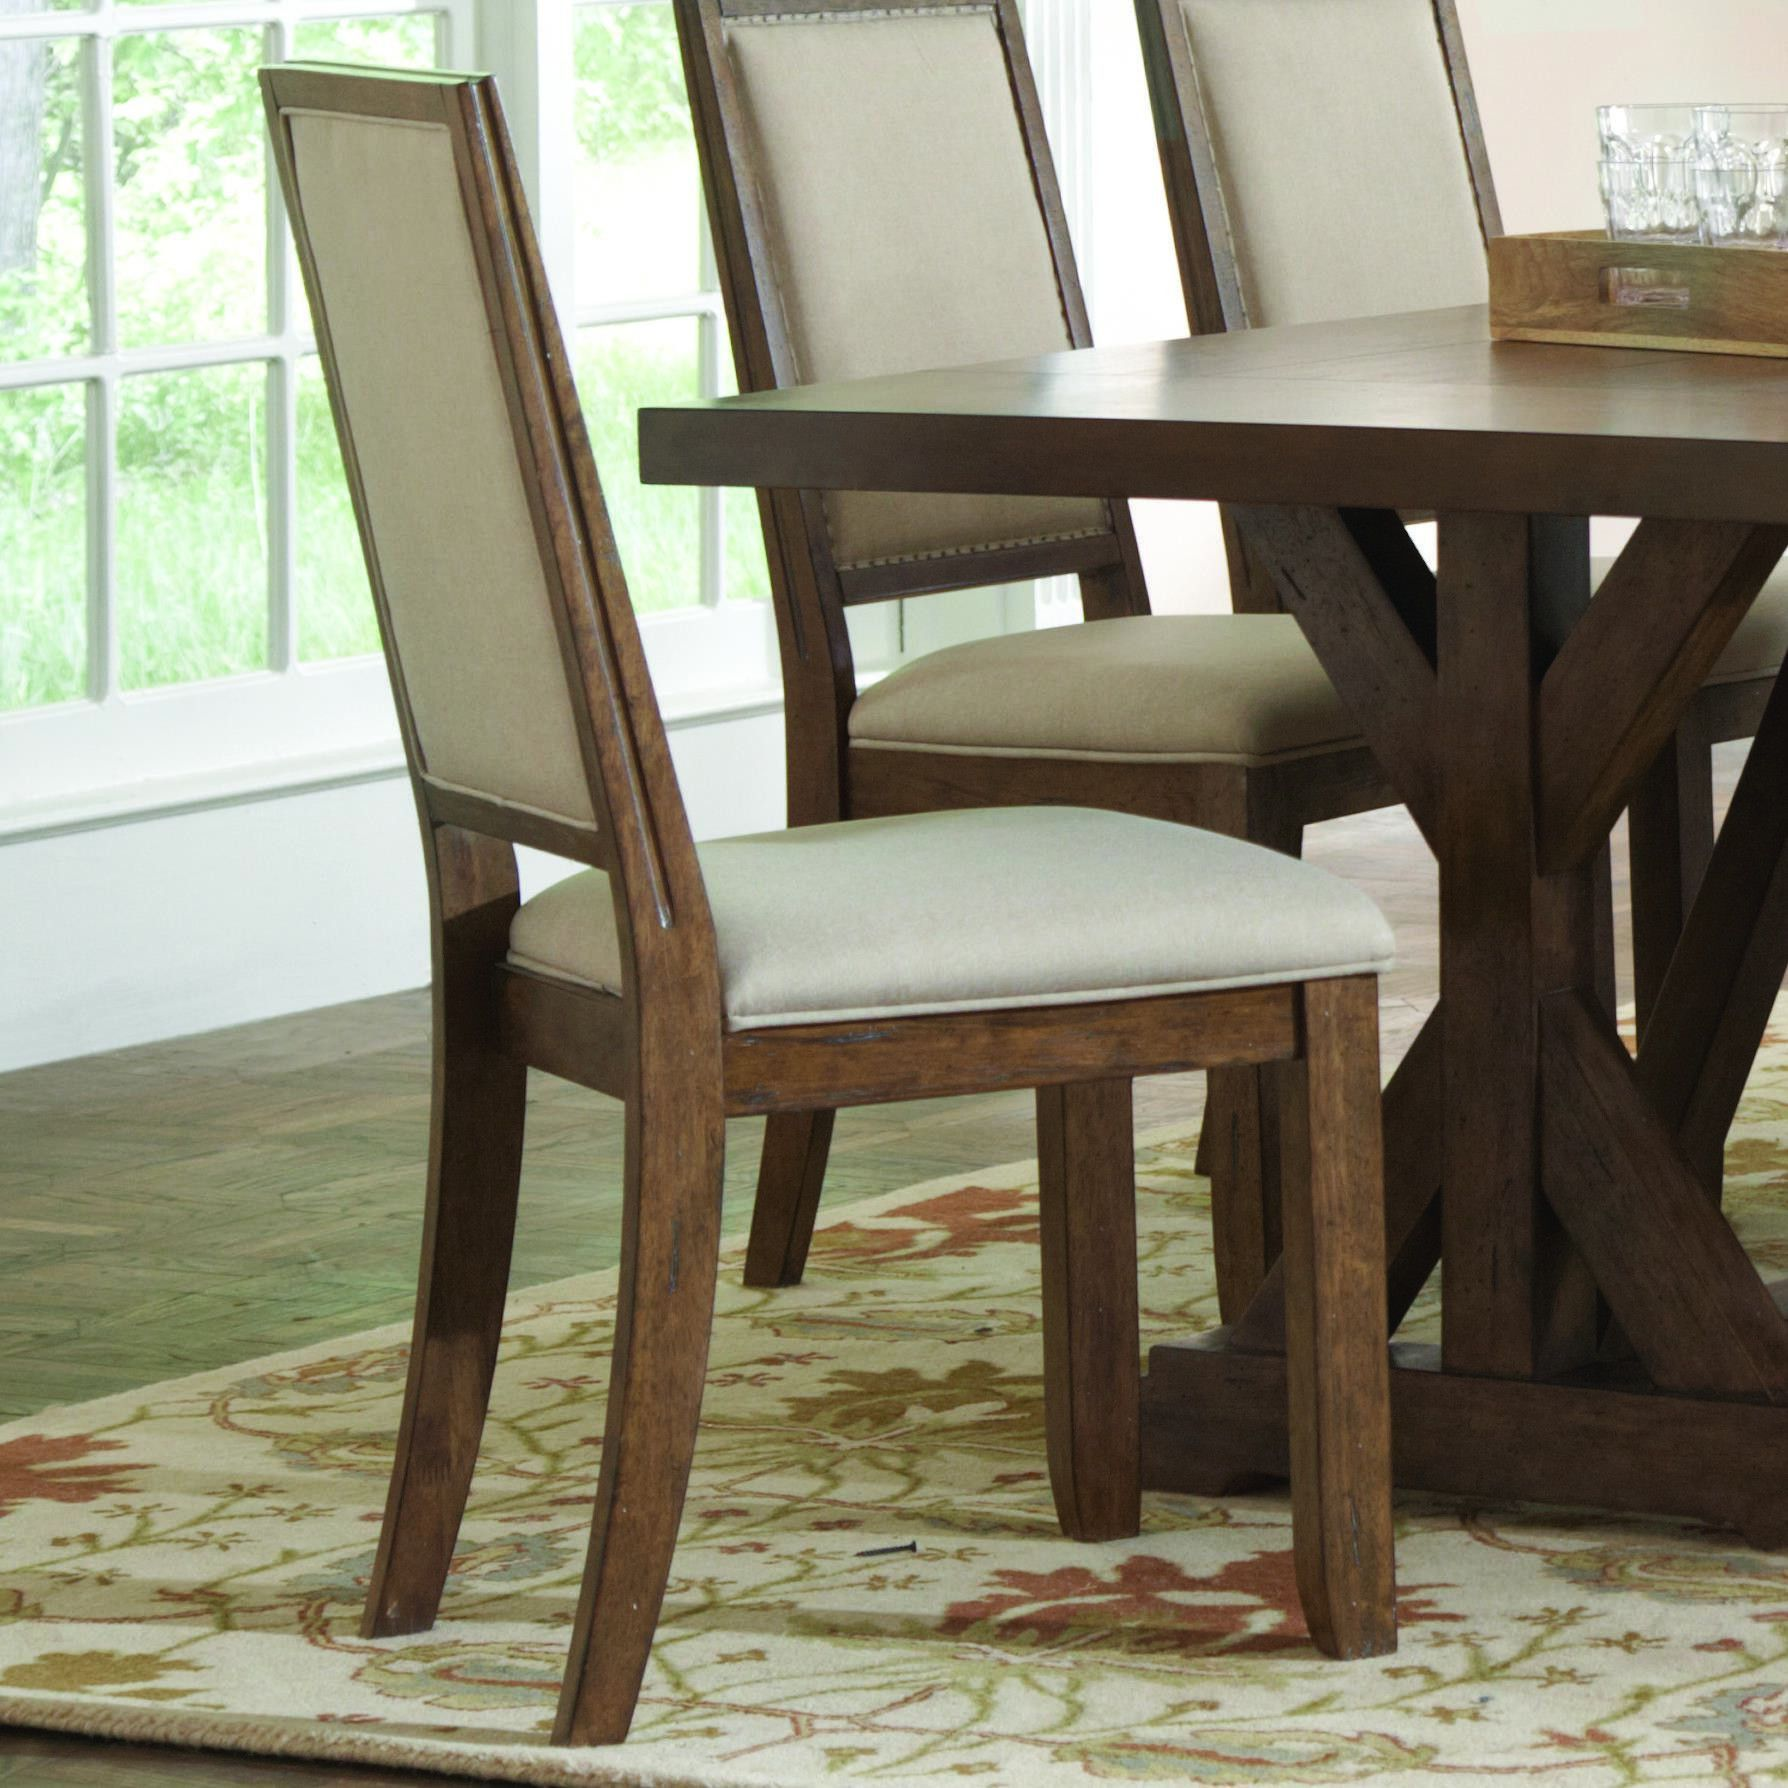 Bridgeport set of rustic dining chair products pinterest